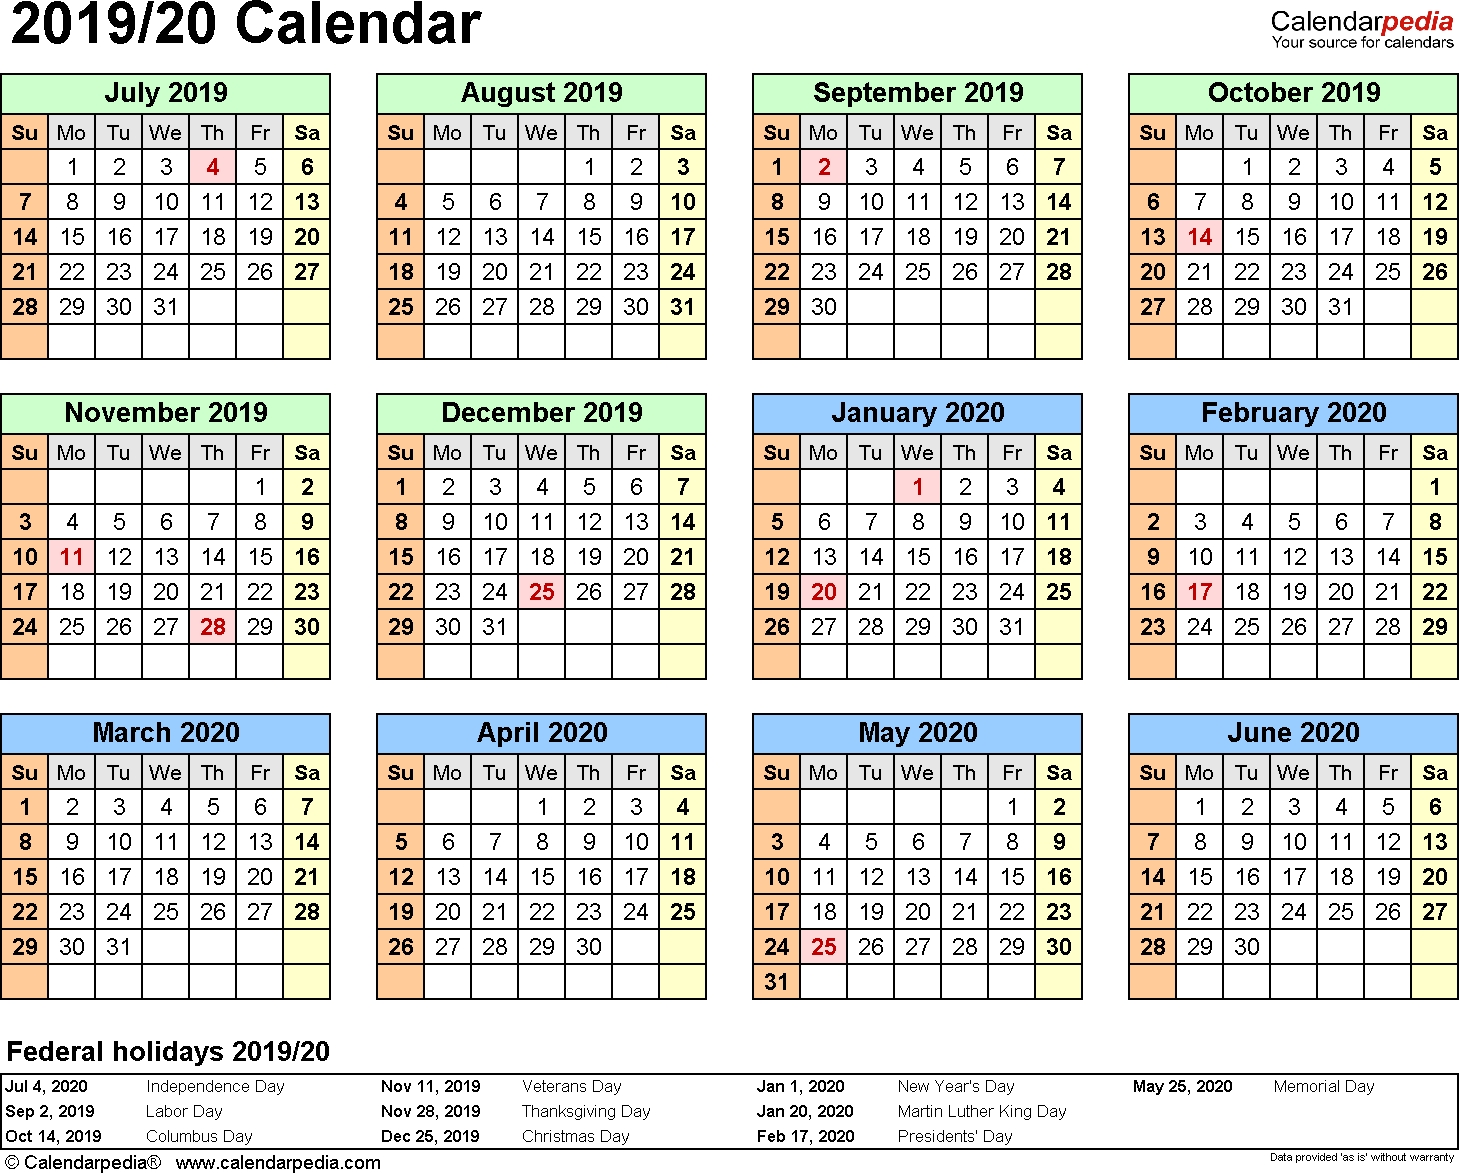 Split Year Calendar 2019/20 (July To June) - Excel Templates intended for 2019-2020 Fiscal Calendar 4 4 5